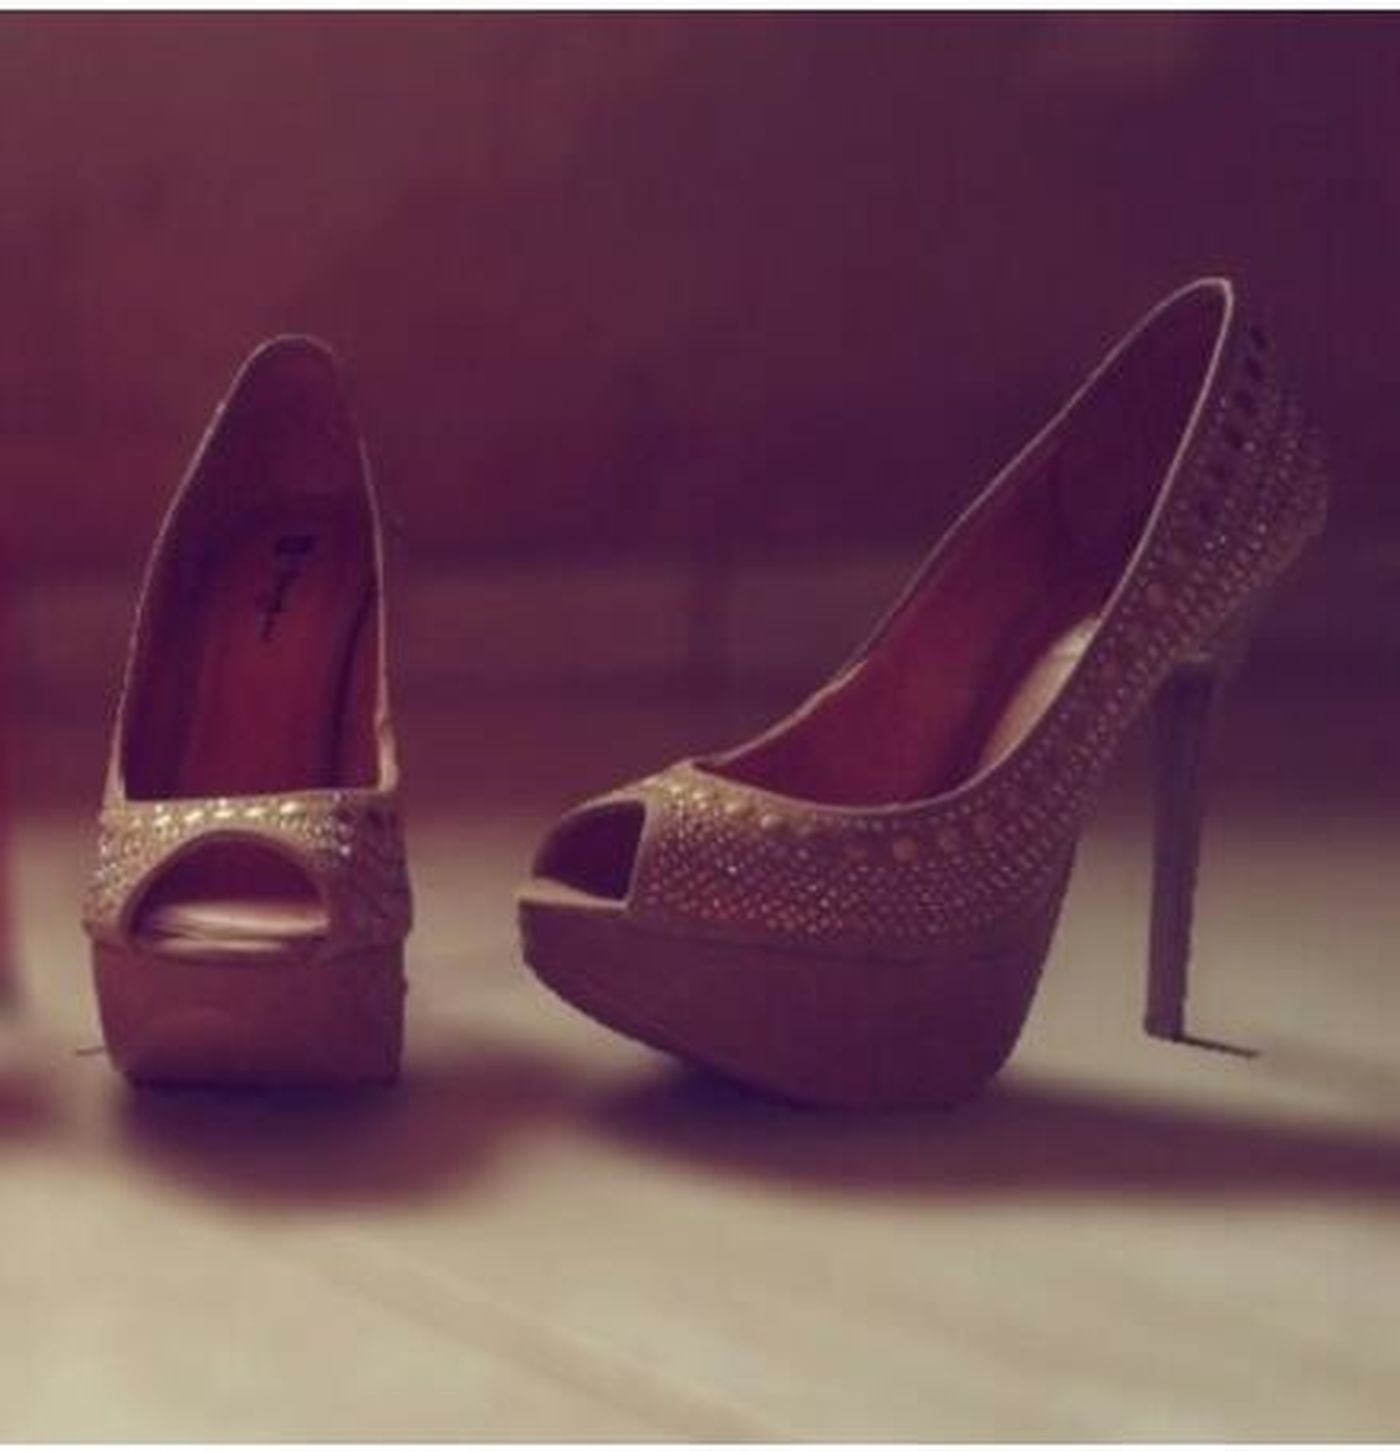 Fashion Is My Profeshion  Shoes :) Shoes ♥ High Heels